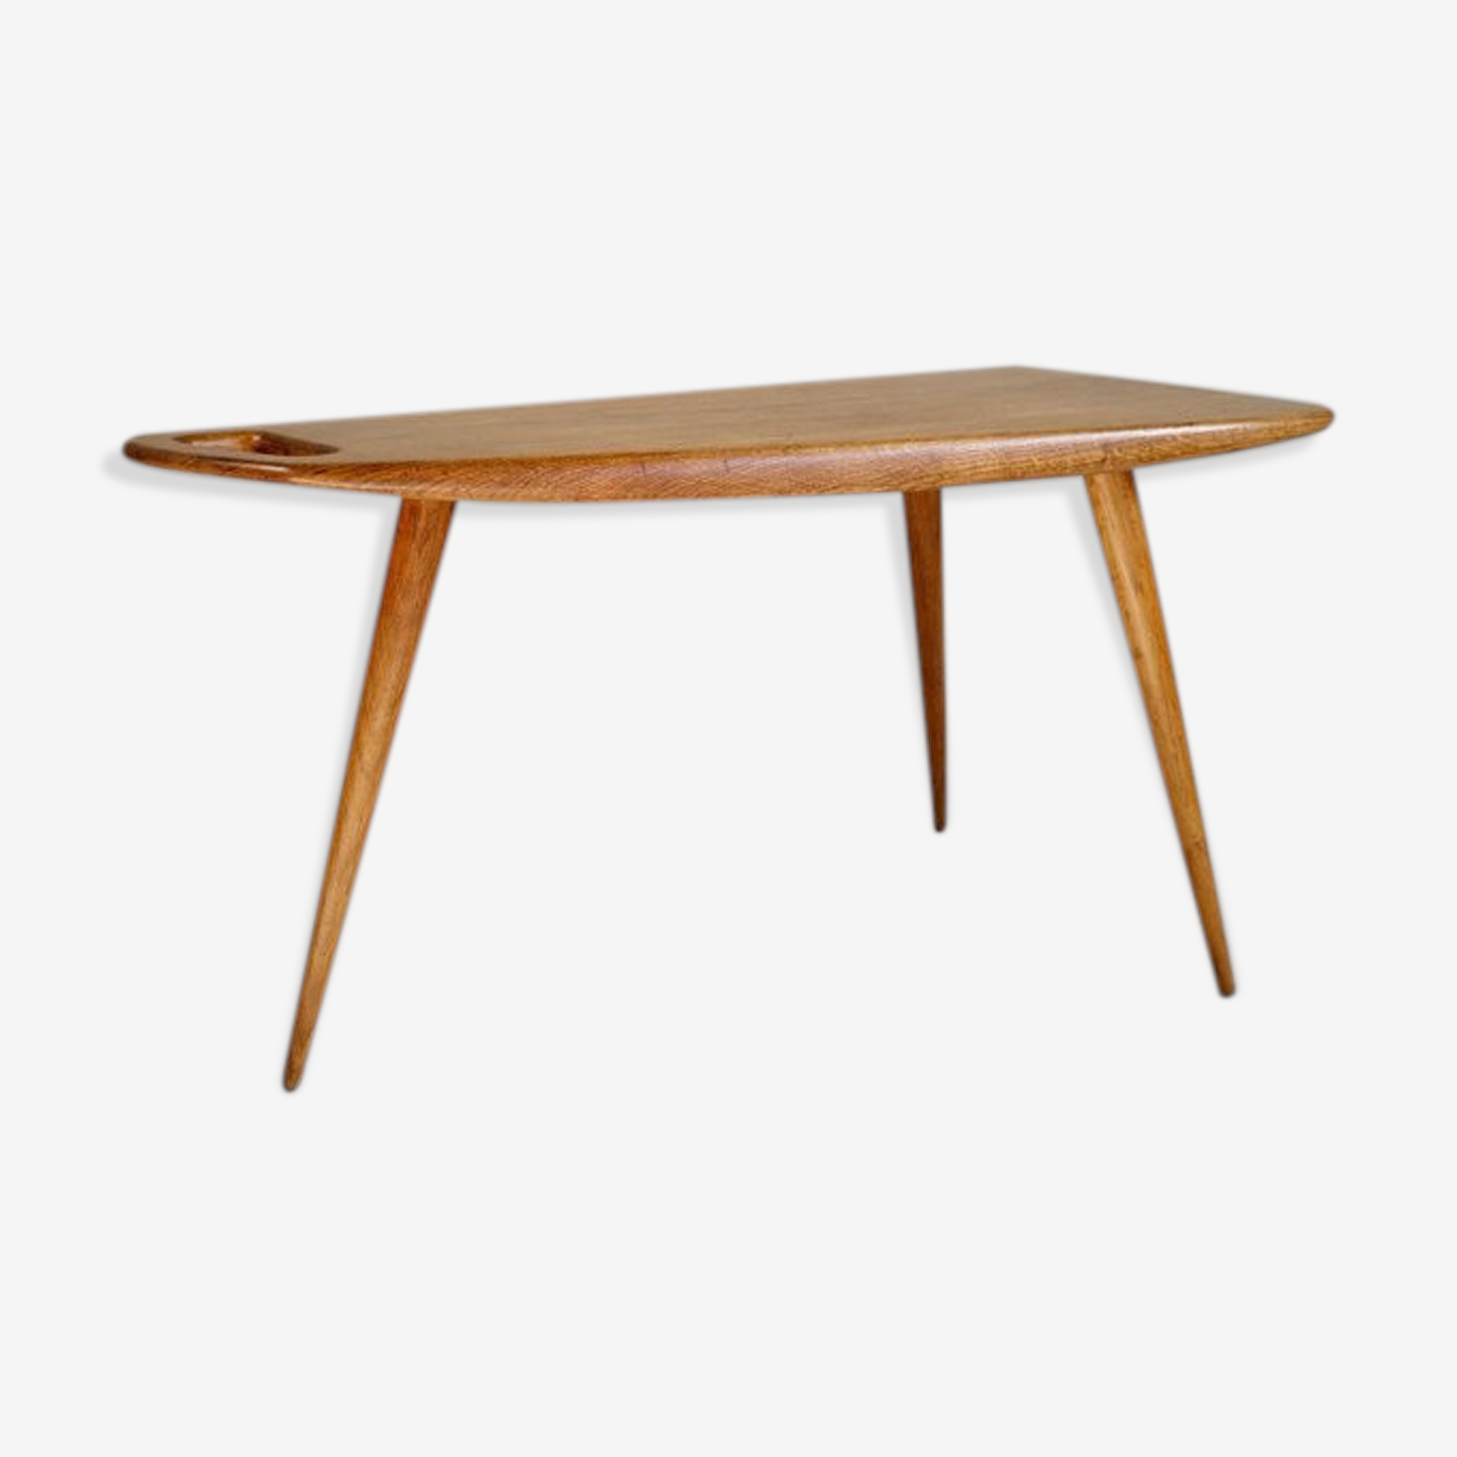 Table low n ° 44 oak Pierre Cruege 1950